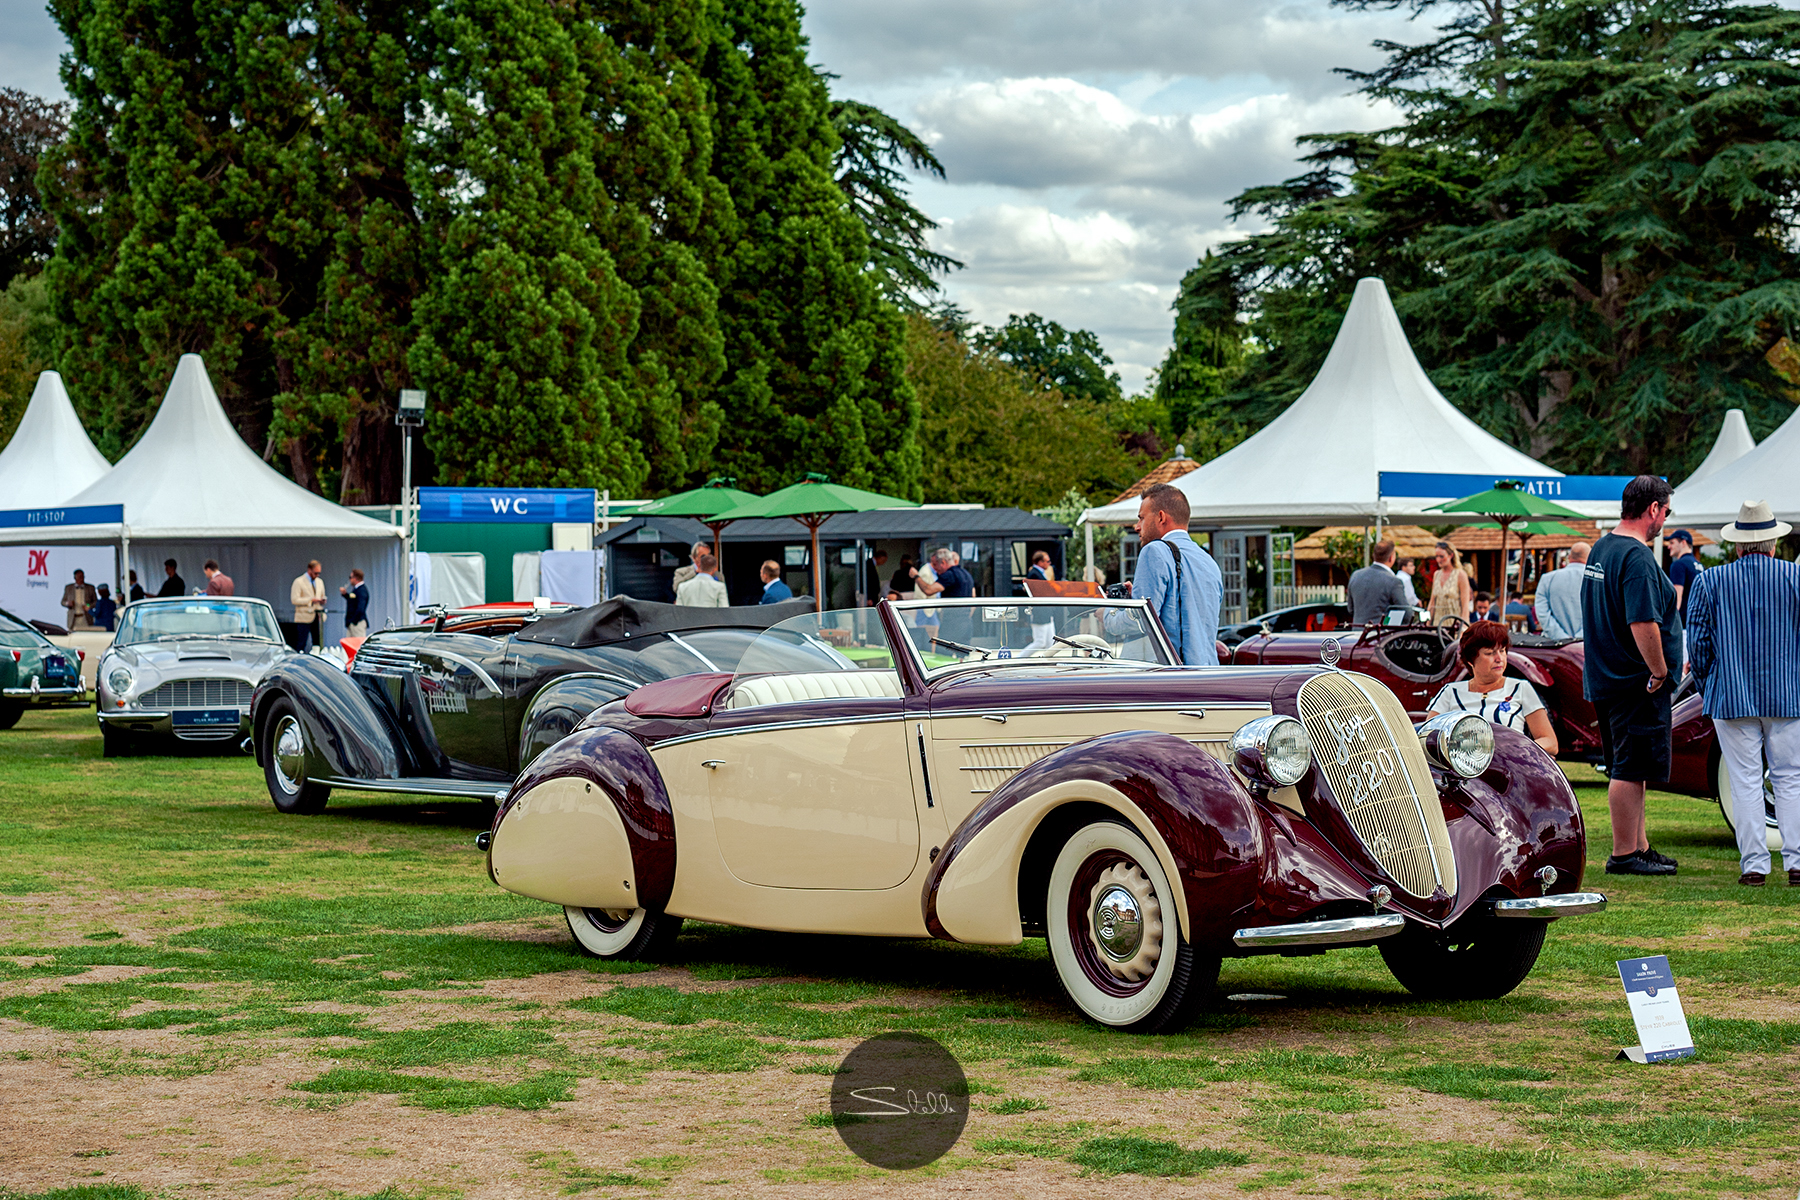 Stella Scordellis Salon Prive 2018 57 Watermarked.jpg